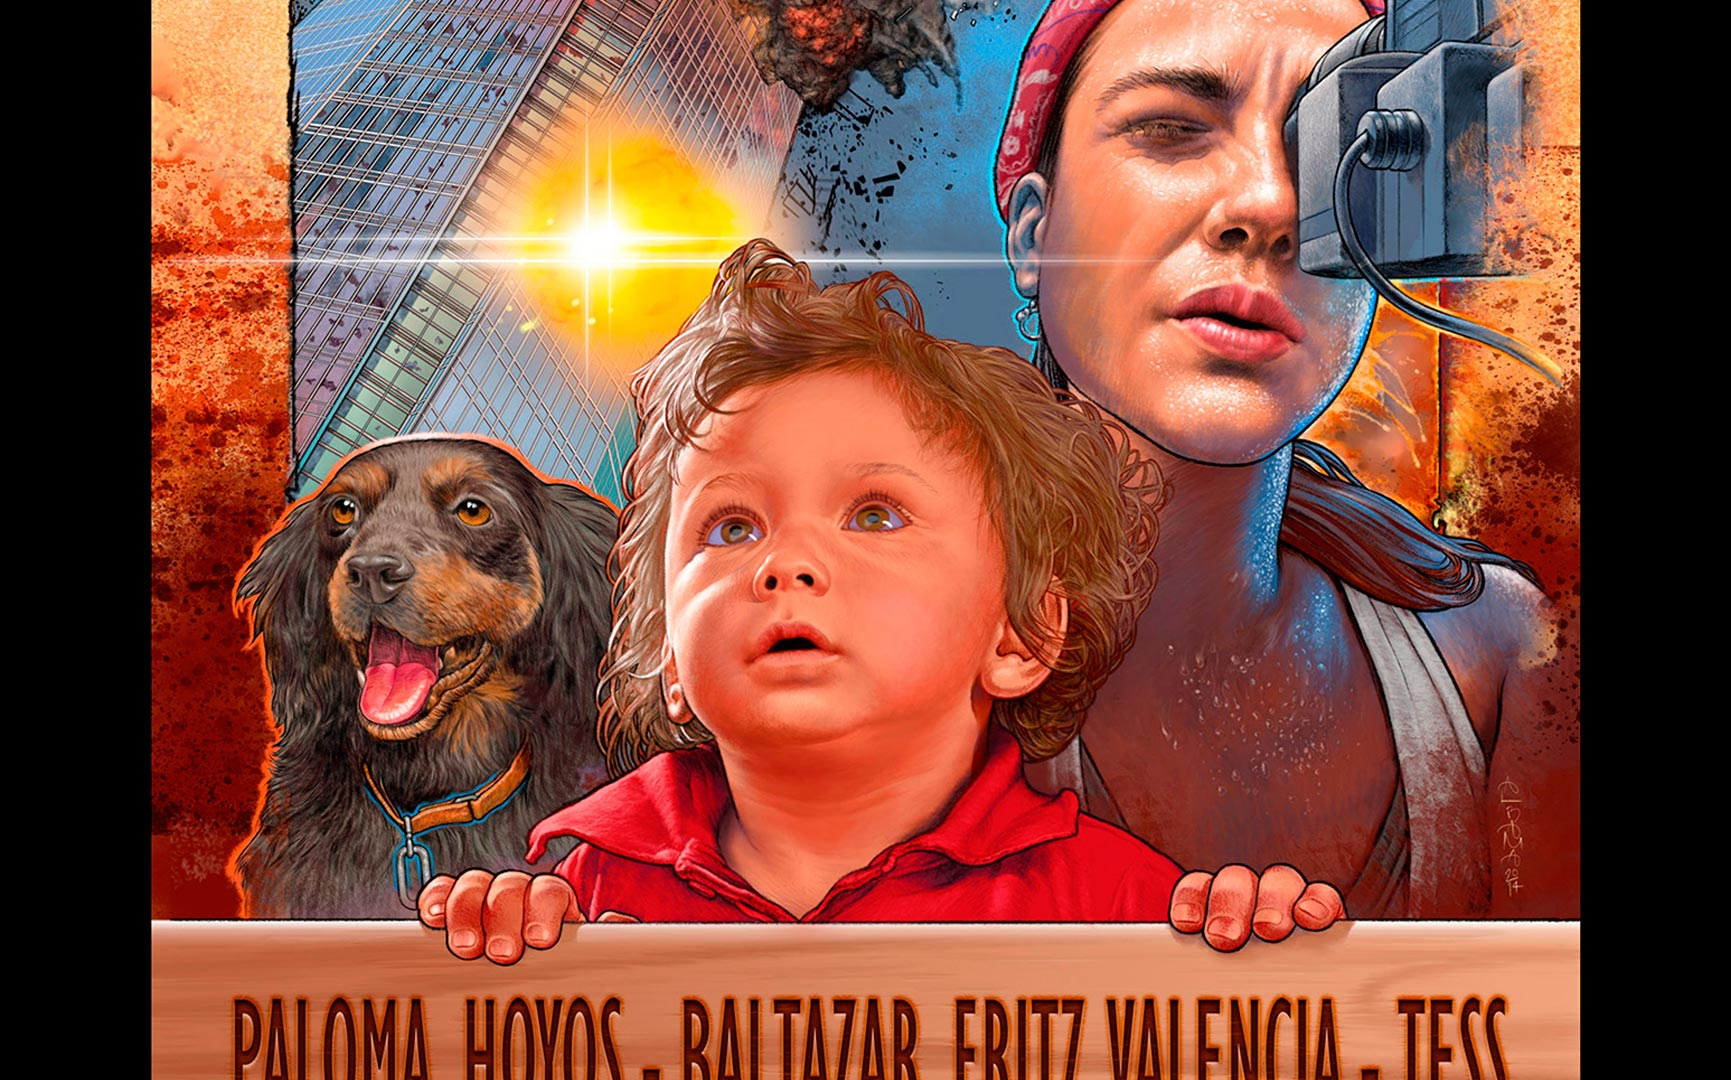 Super M short movie / Design and illustration of movie poster / JumpCats FX studios  Chile / Digital Illustration / Detail